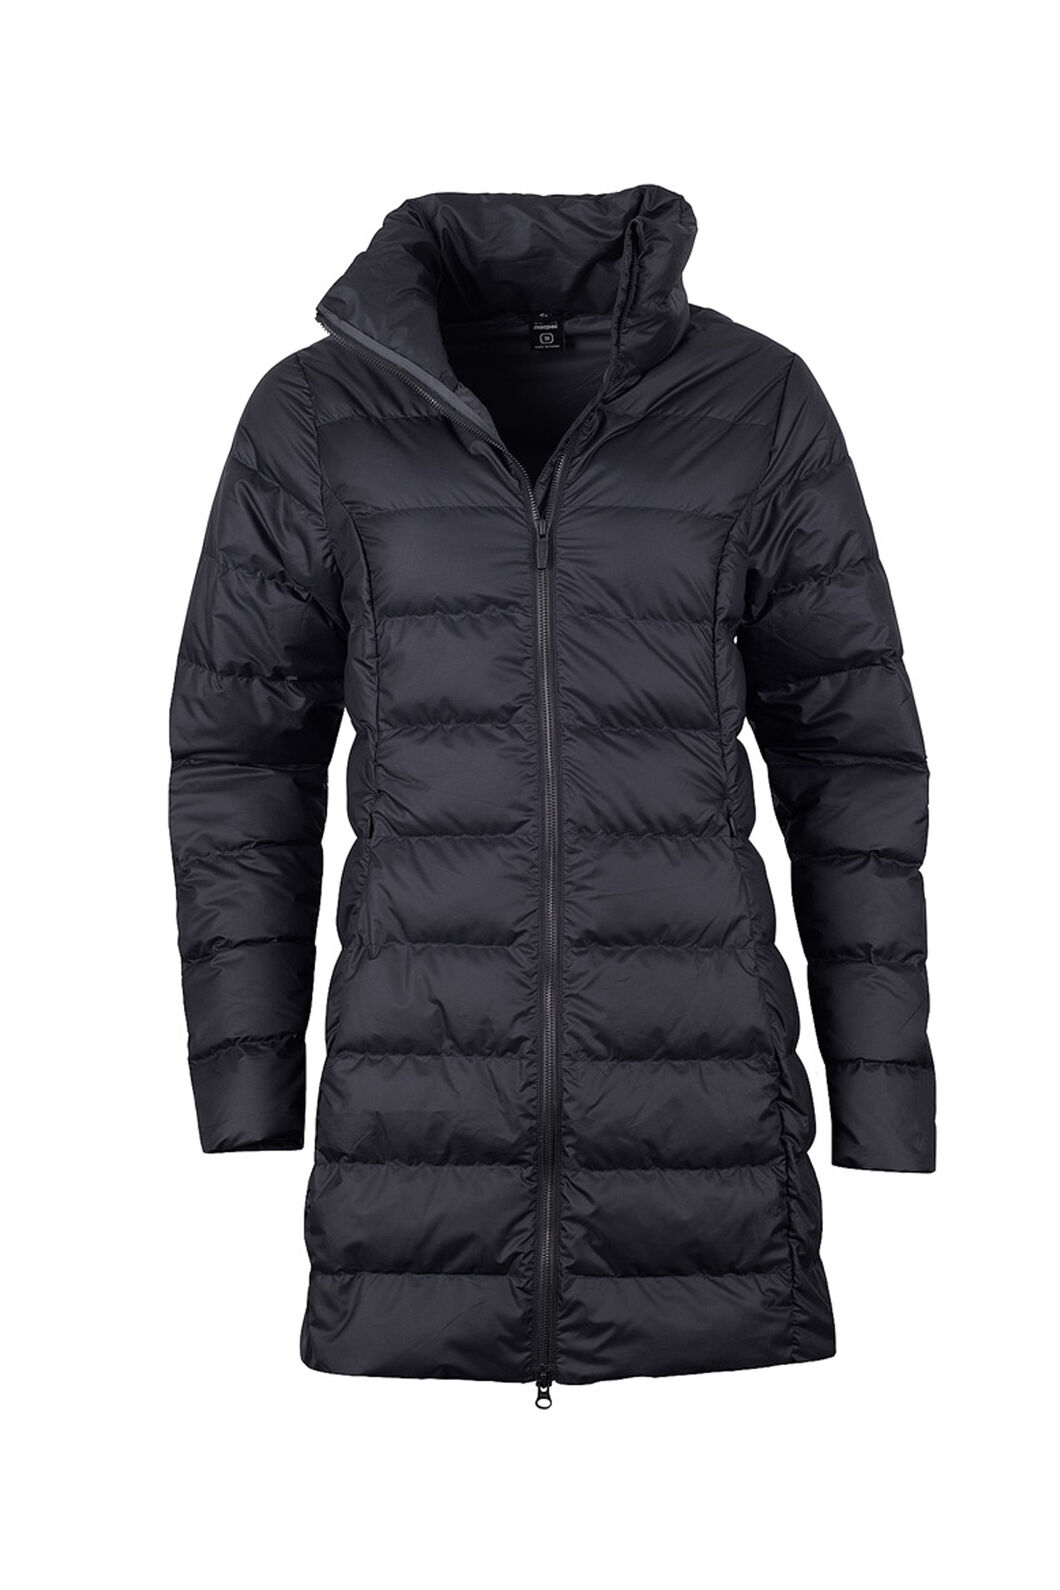 Macpac Demi Down Coat - Women's, Black, hi-res